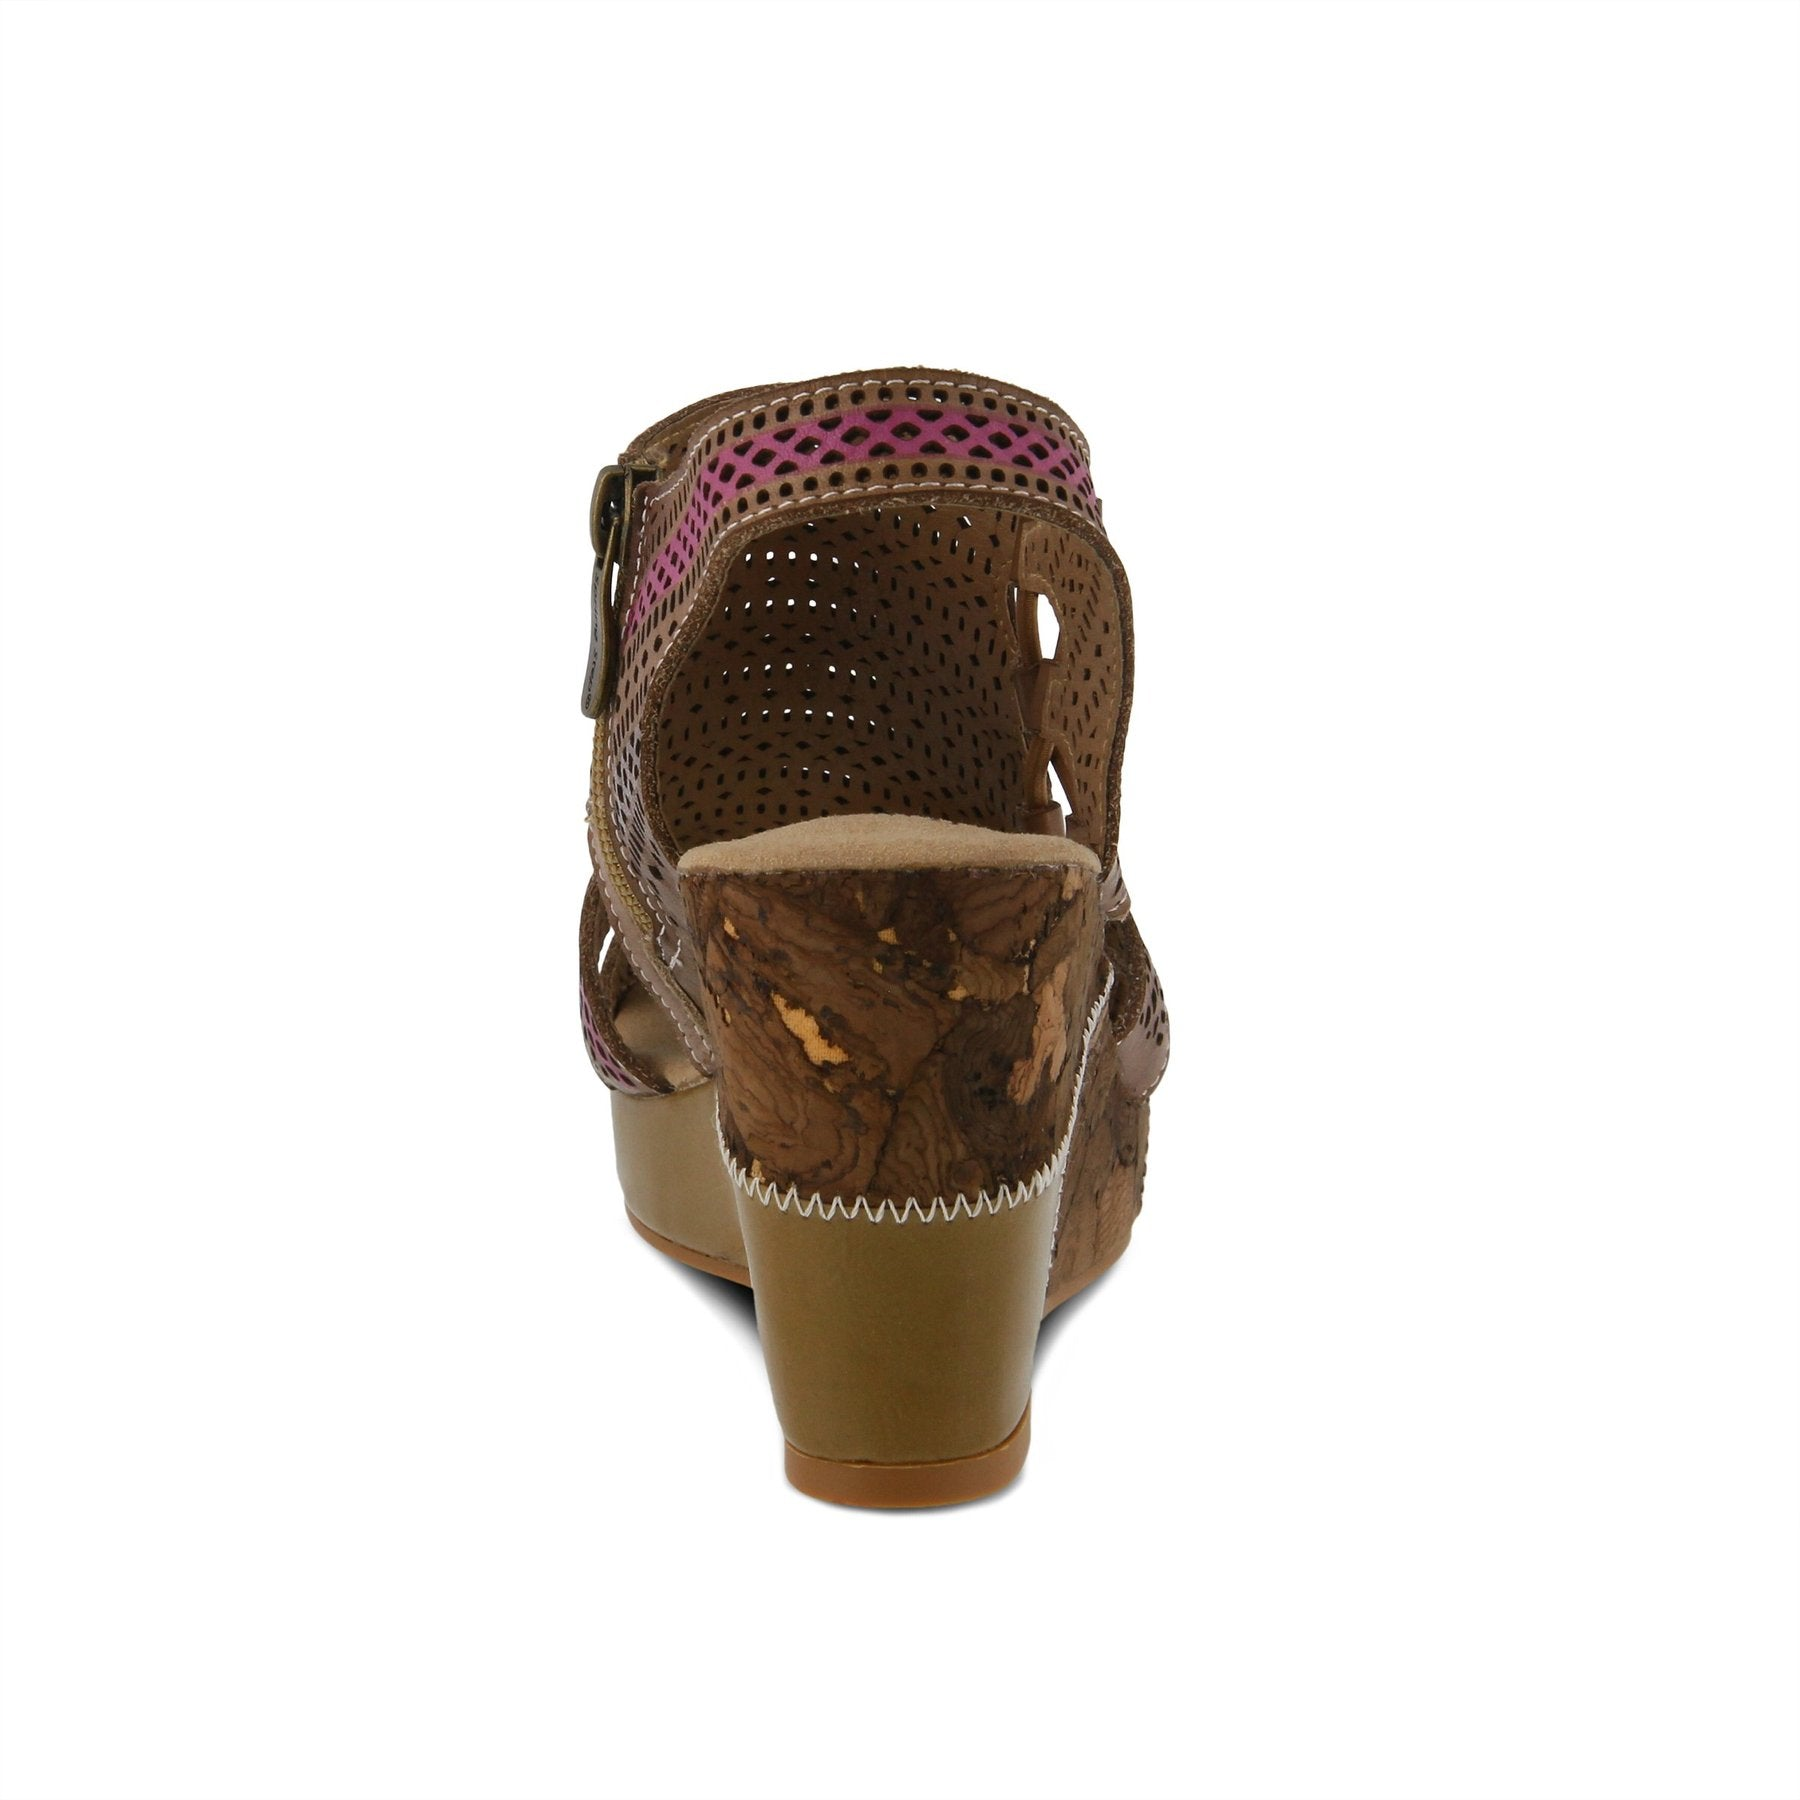 Irvana Sandal LAST ONE size 9 only